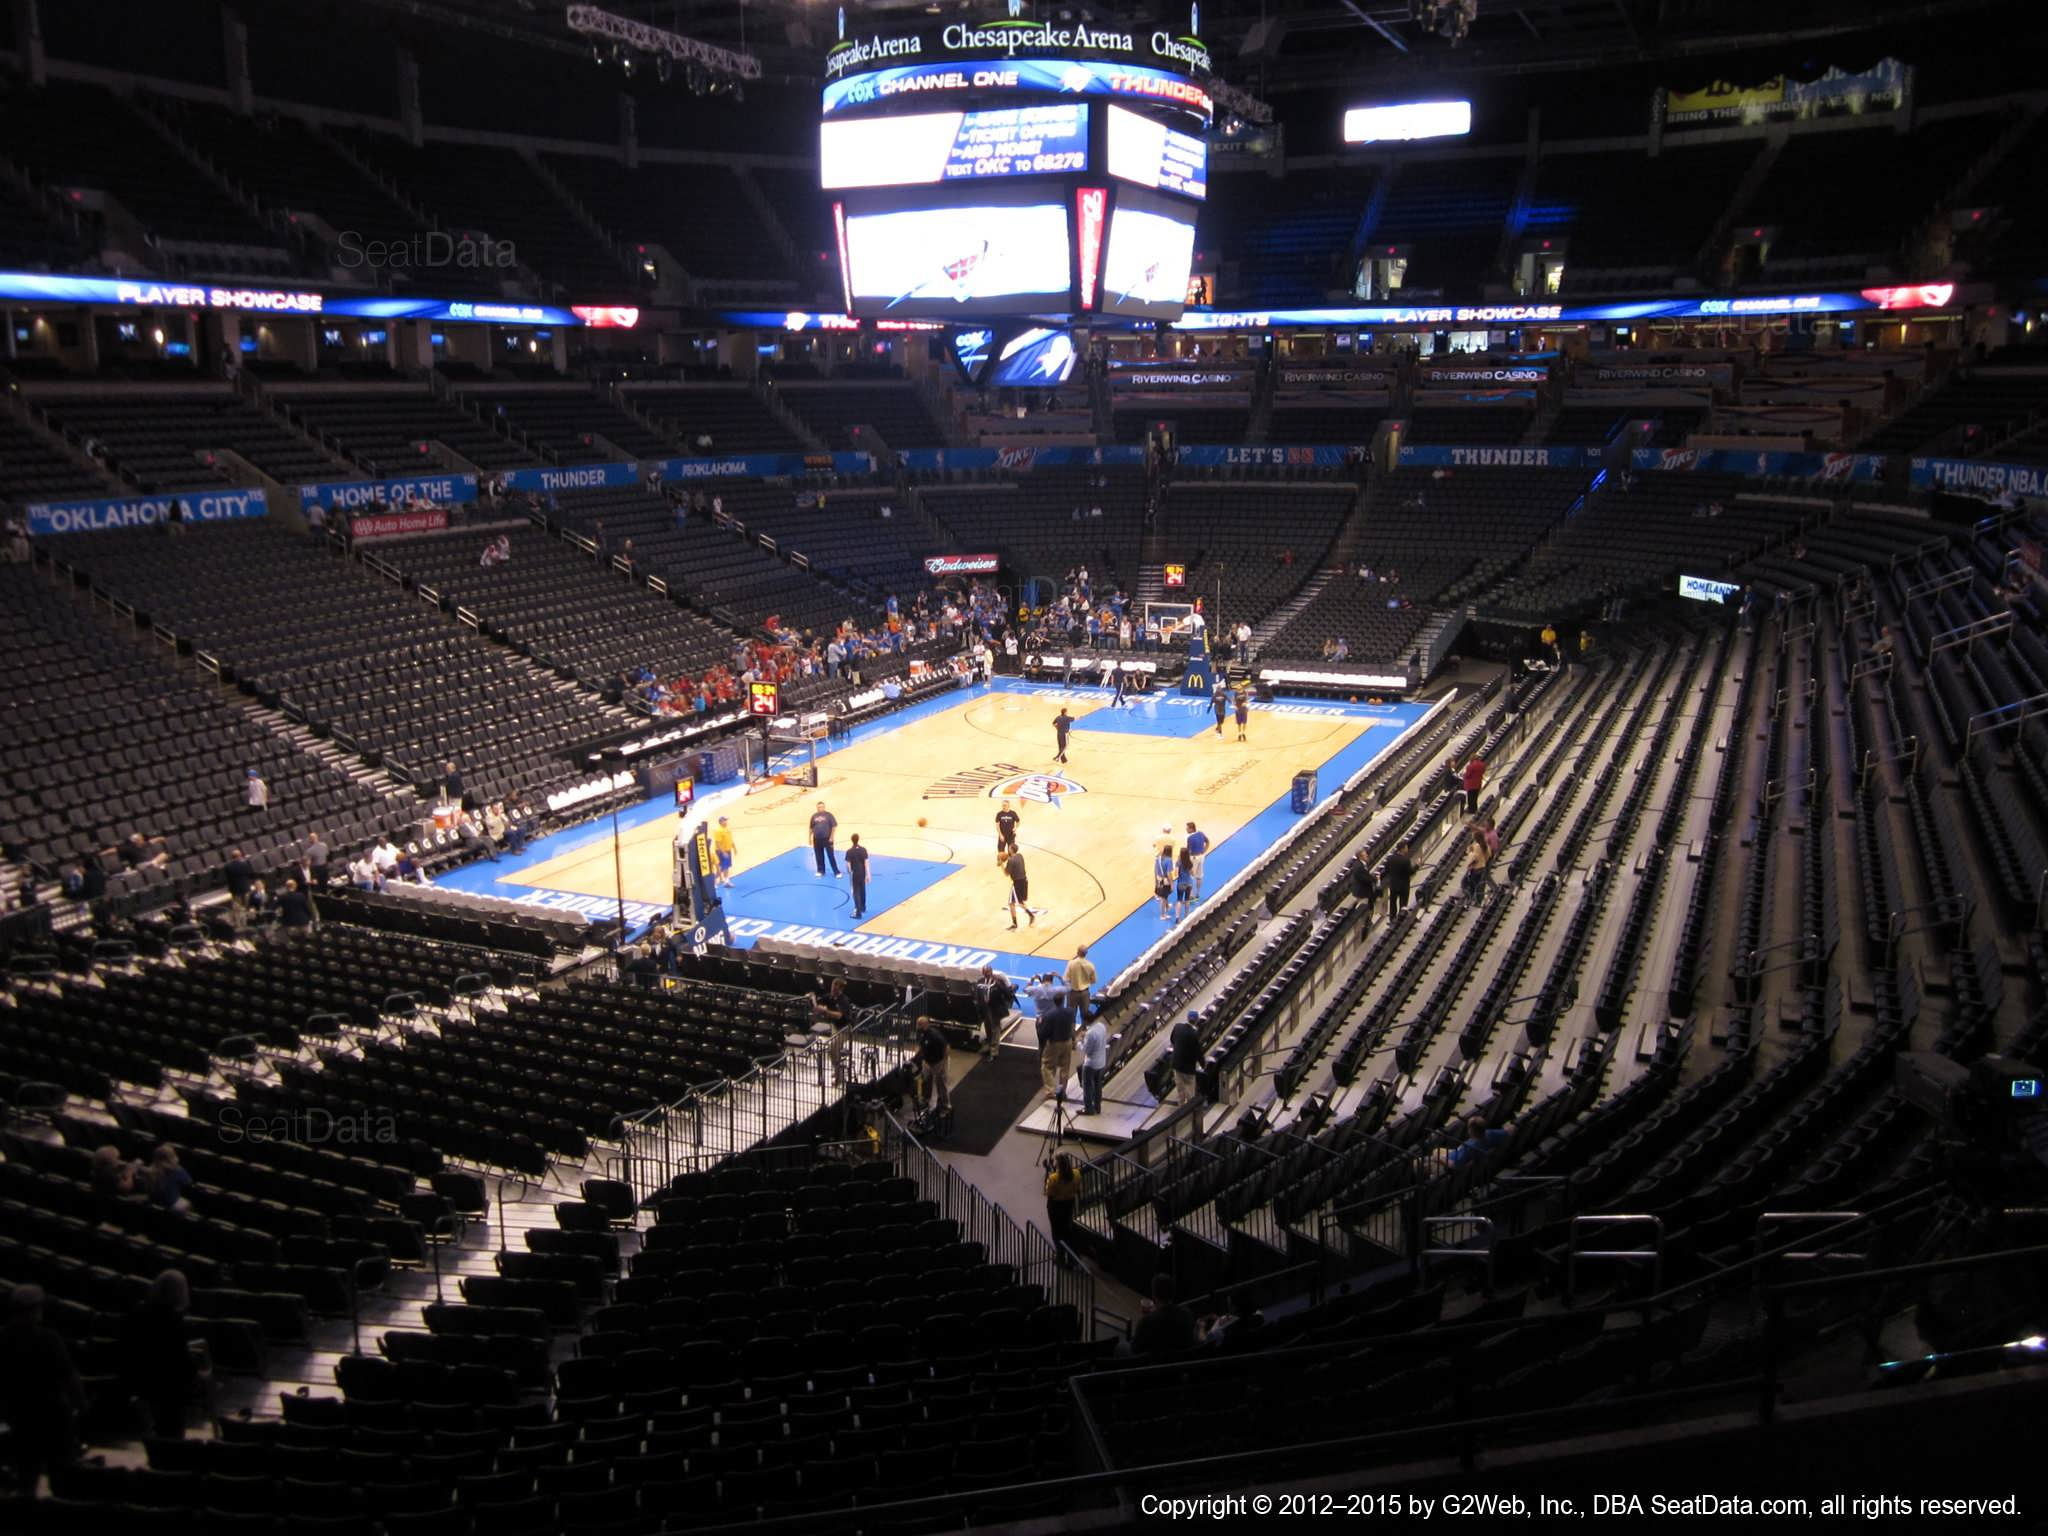 Seat view from section 213 at Chesapeake Energy Arena, home of the Oklahoma City Thunder